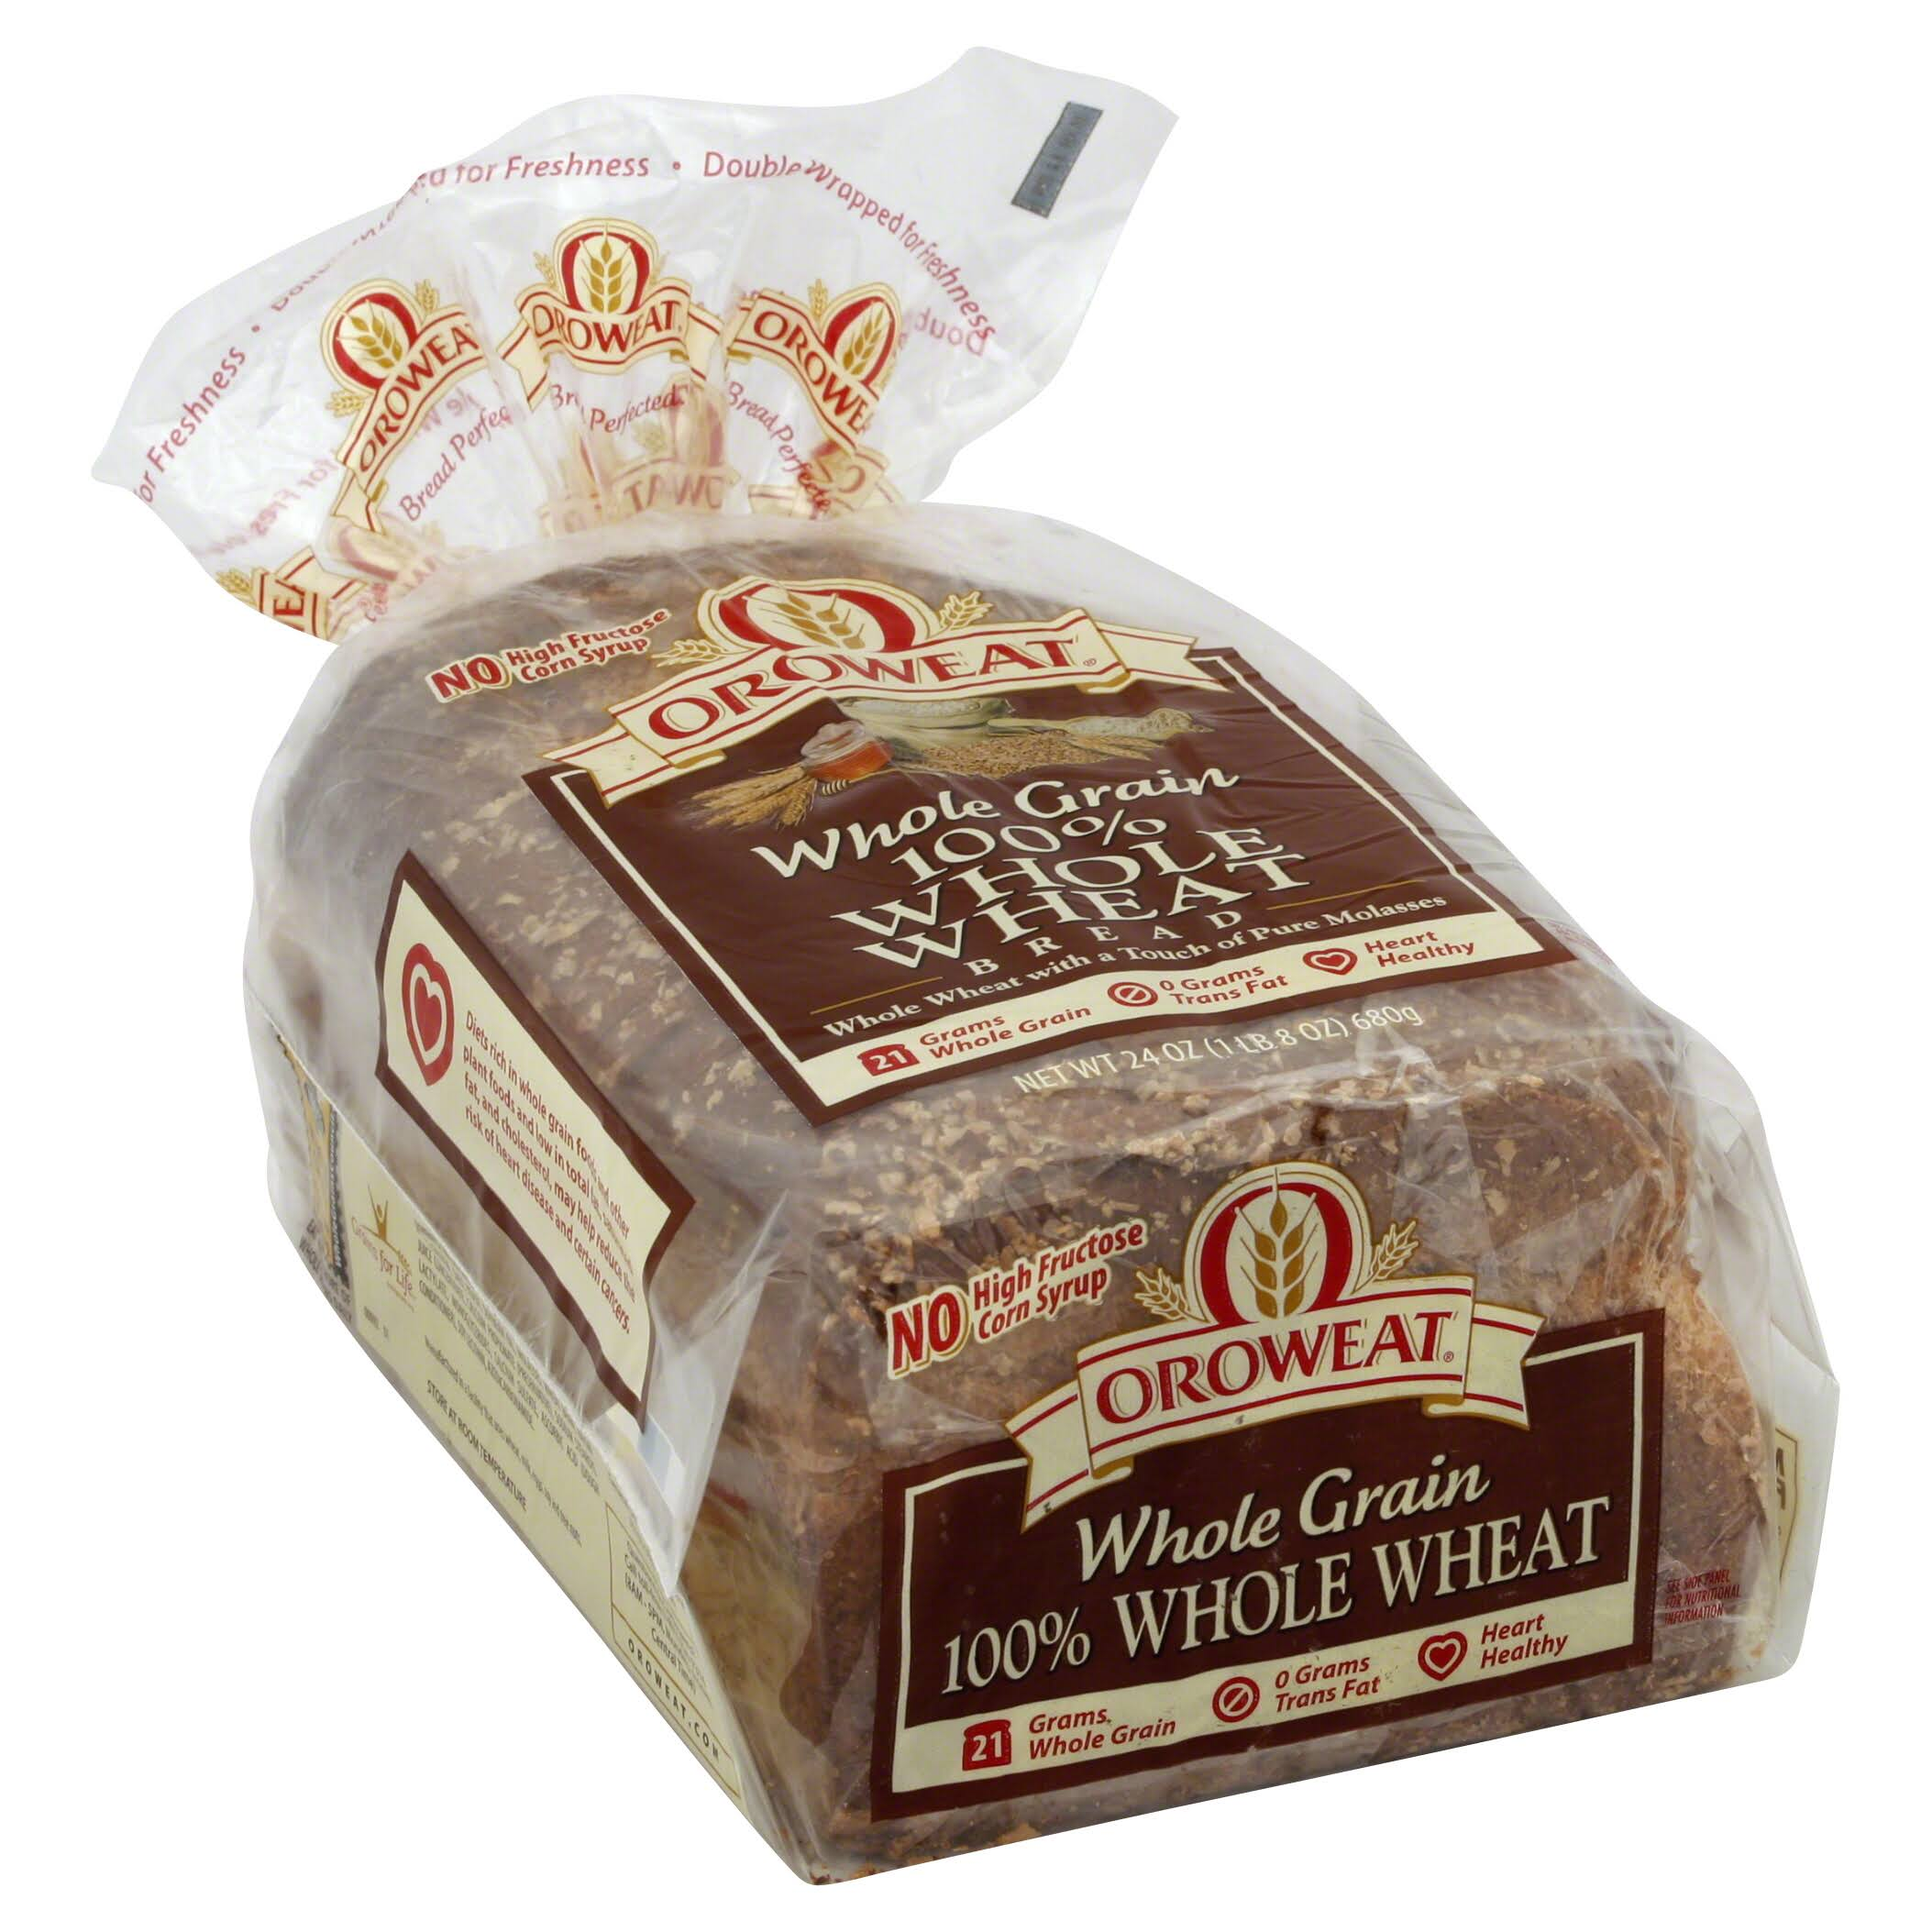 Oroweat Whole Grains Bread - 100% Whole Wheat, 1lb